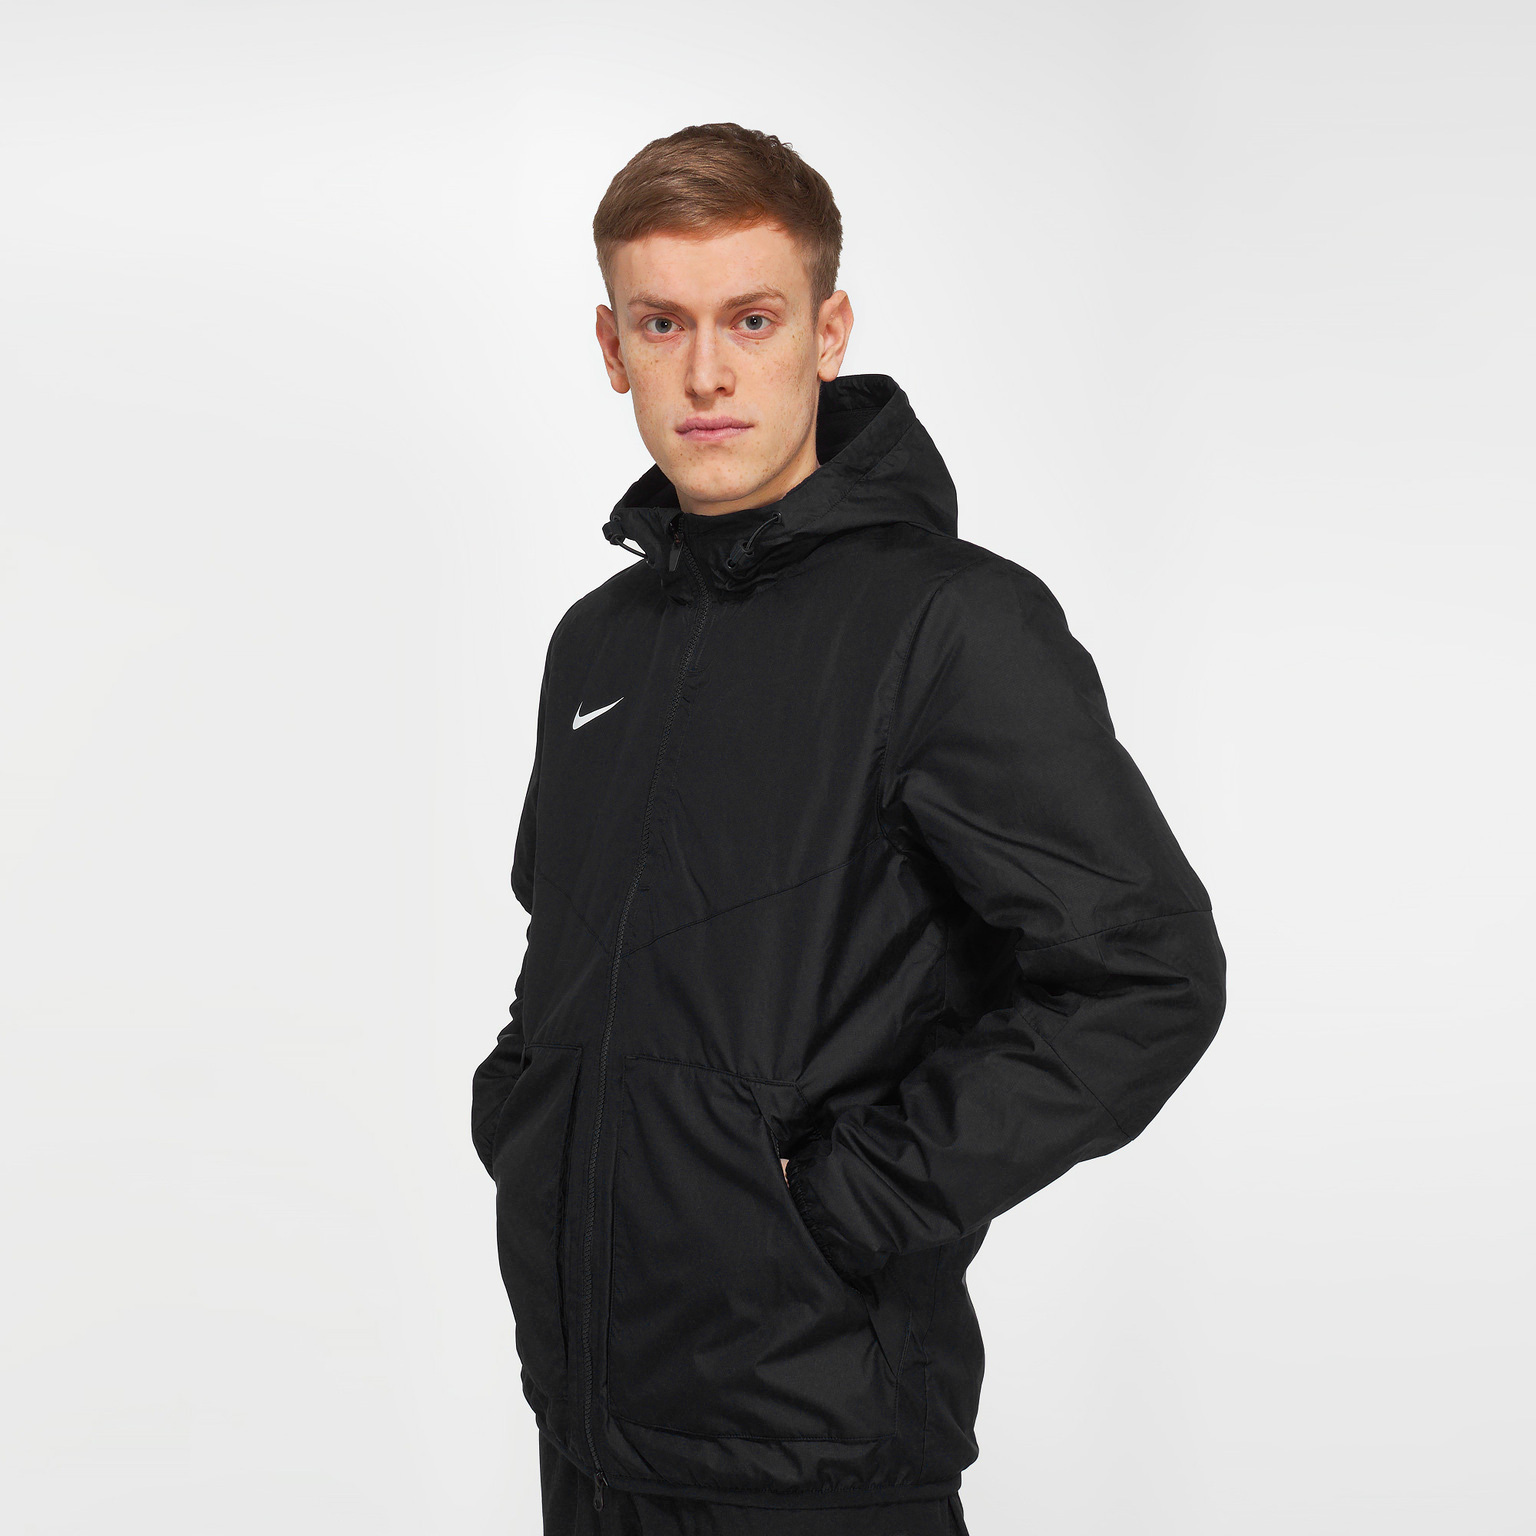 Куртка Nike Team Fall JKT 645550-010 куртка nike team winter jkt 645484 010